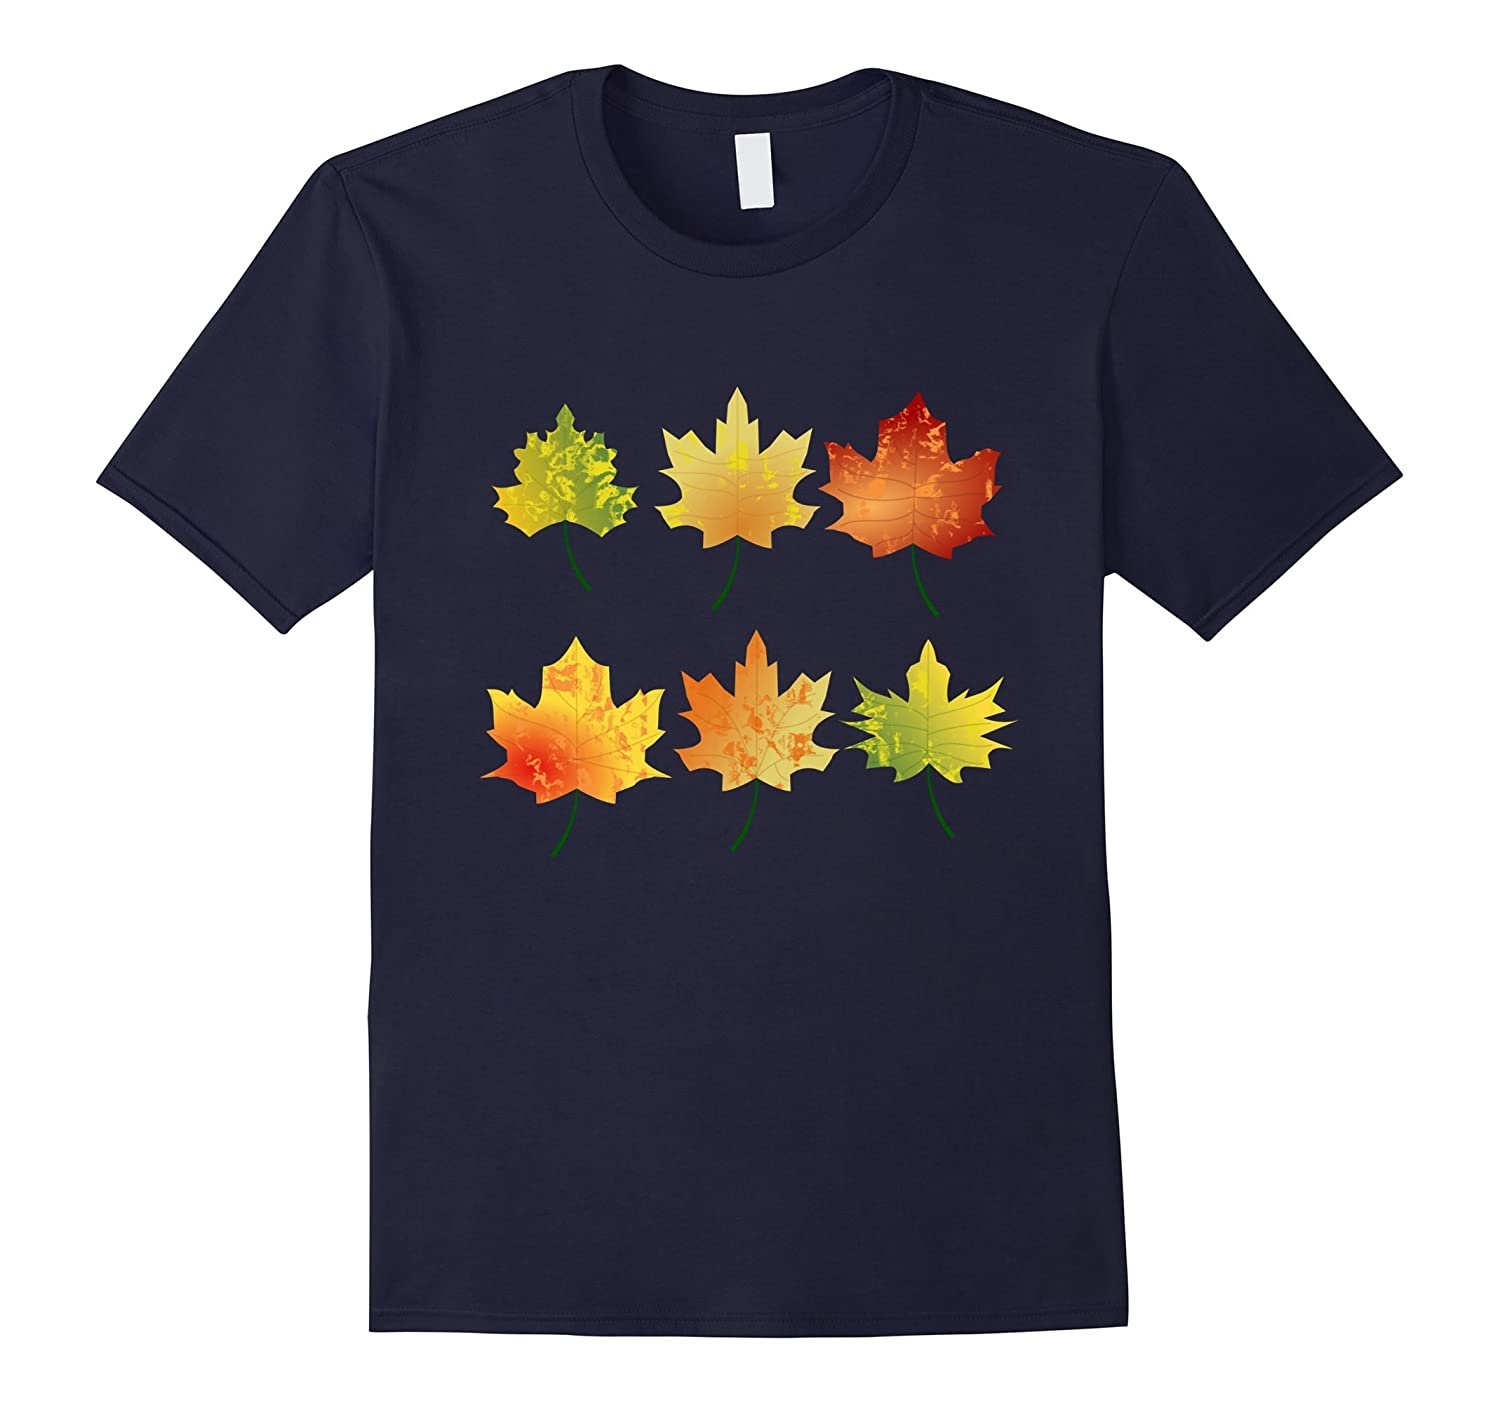 Fall Autumn Tree Leaves Shirt Turn Colors Harvest T-Shirt-FL